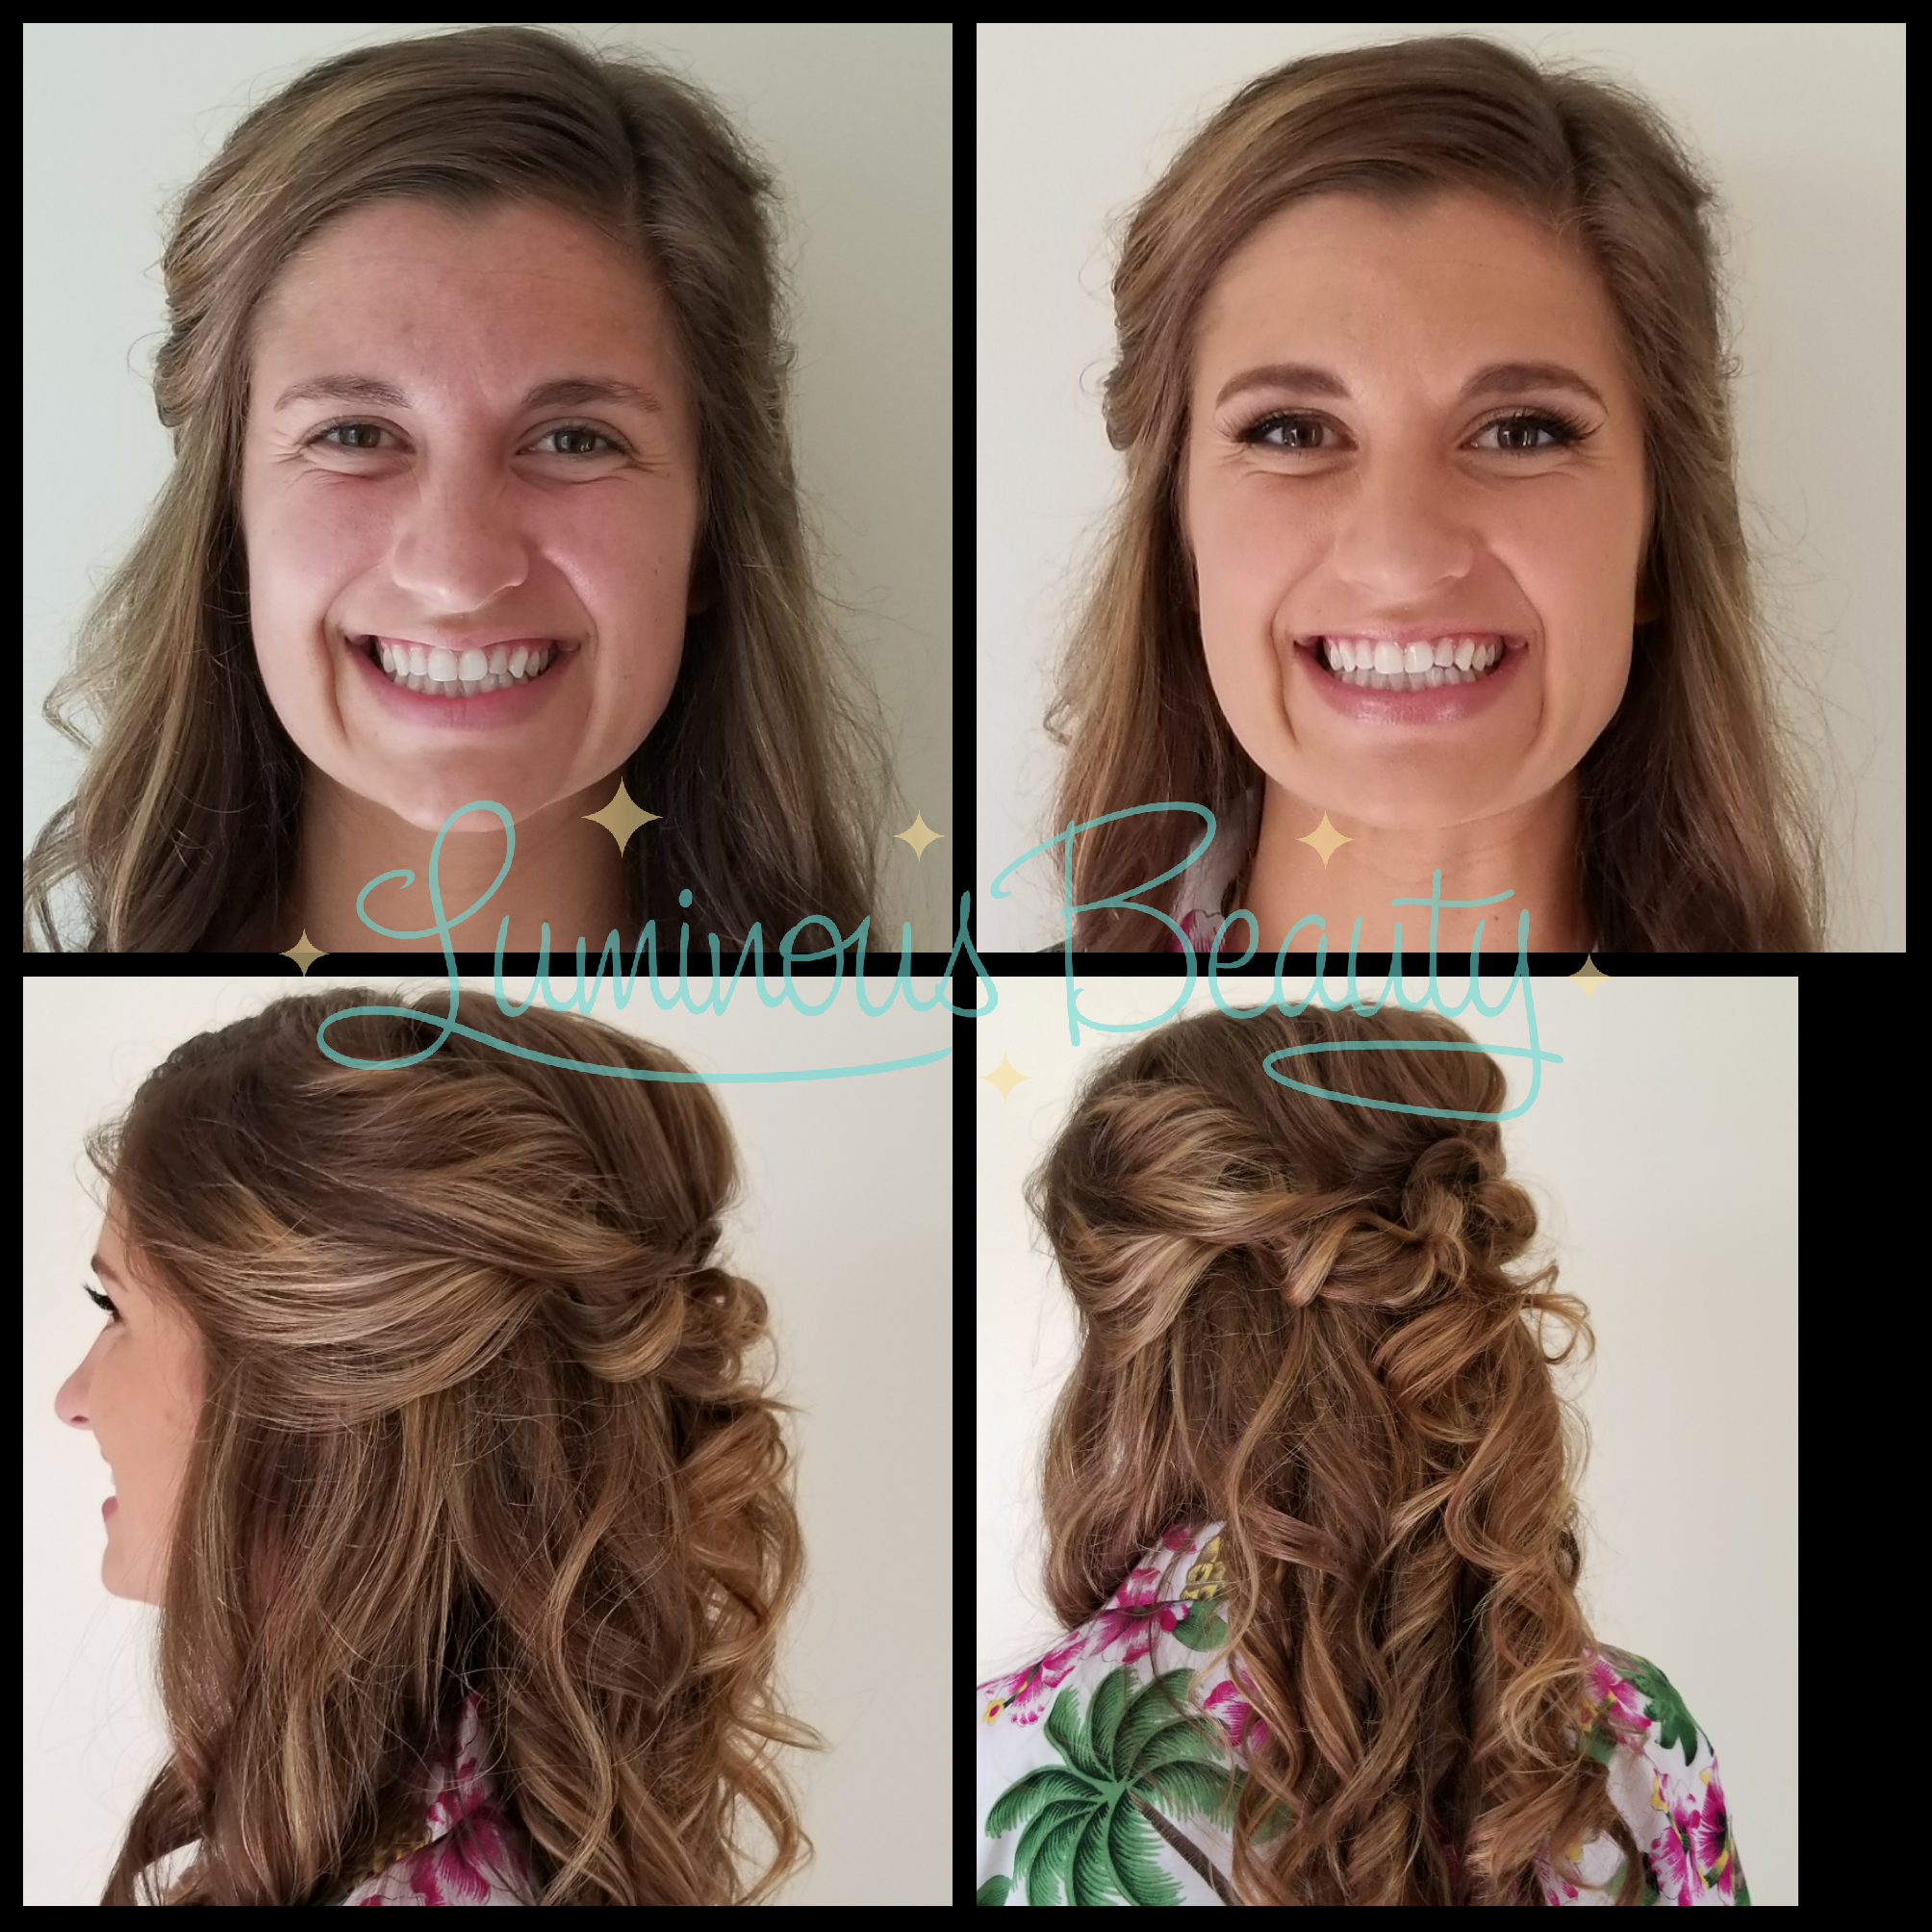 Bridal Hair and Airbrush Makeup with Mink Lashes in Plymouth Luminous Beauty Makeup Artist and Stylist.png